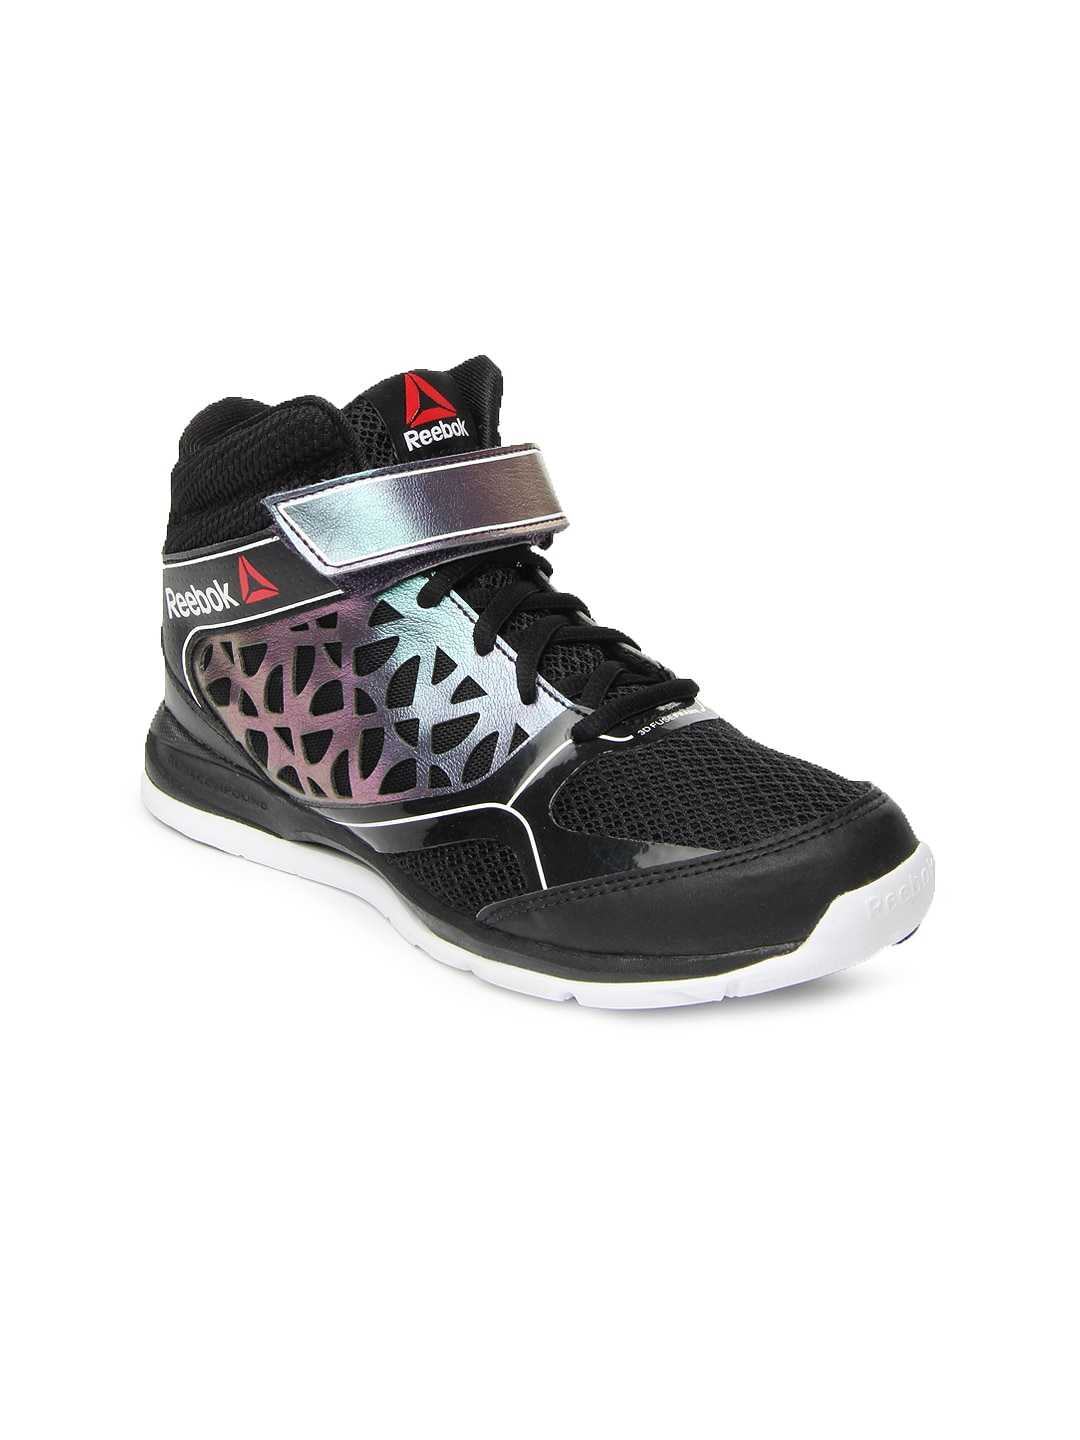 Grabar Industrializar Accidental  reebok 3d fuseframe price off 56% - www.ncccc.gov.eg